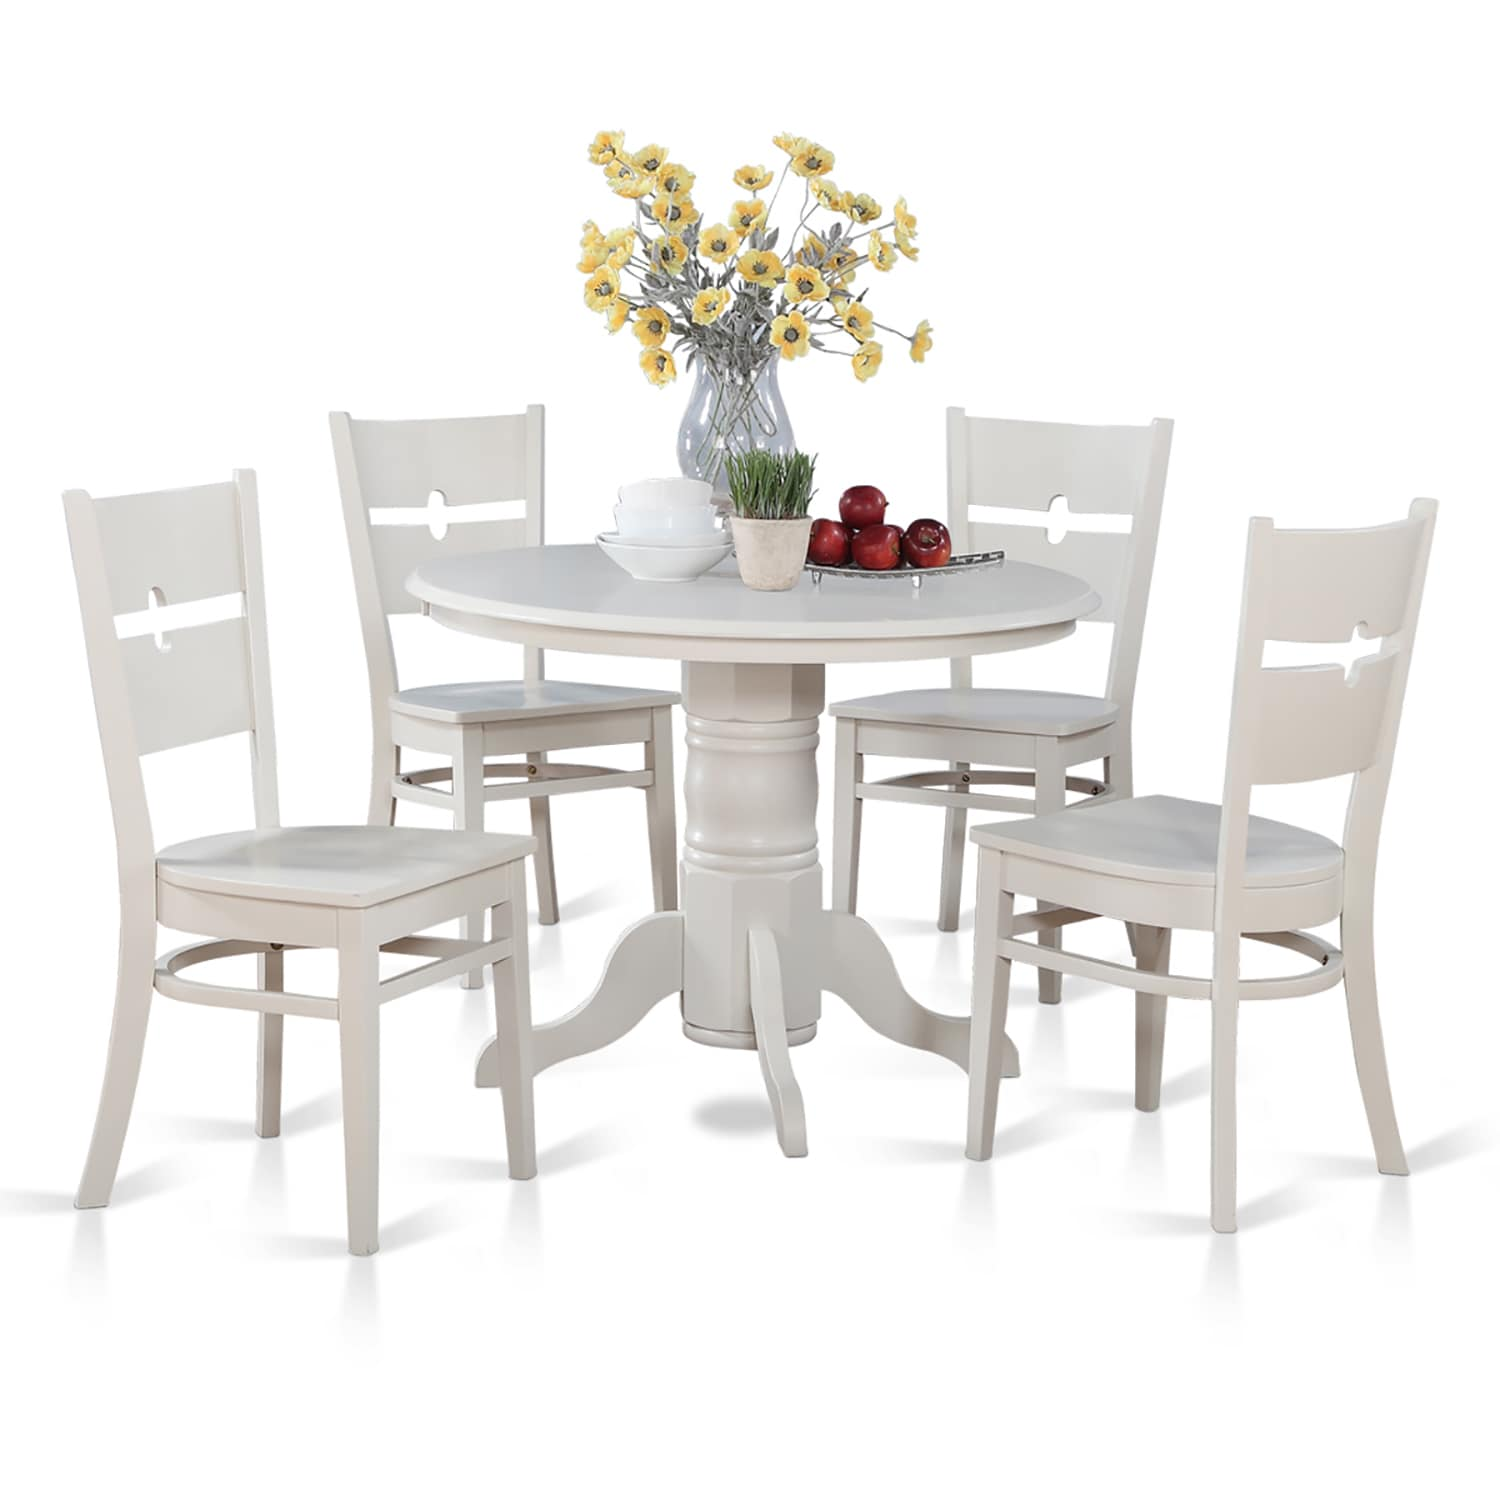 Shop 5 Piece Kitchen Nook Round Table With 4 Dinette Chairs   Free Shipping  Today   Overstock.com   10296480